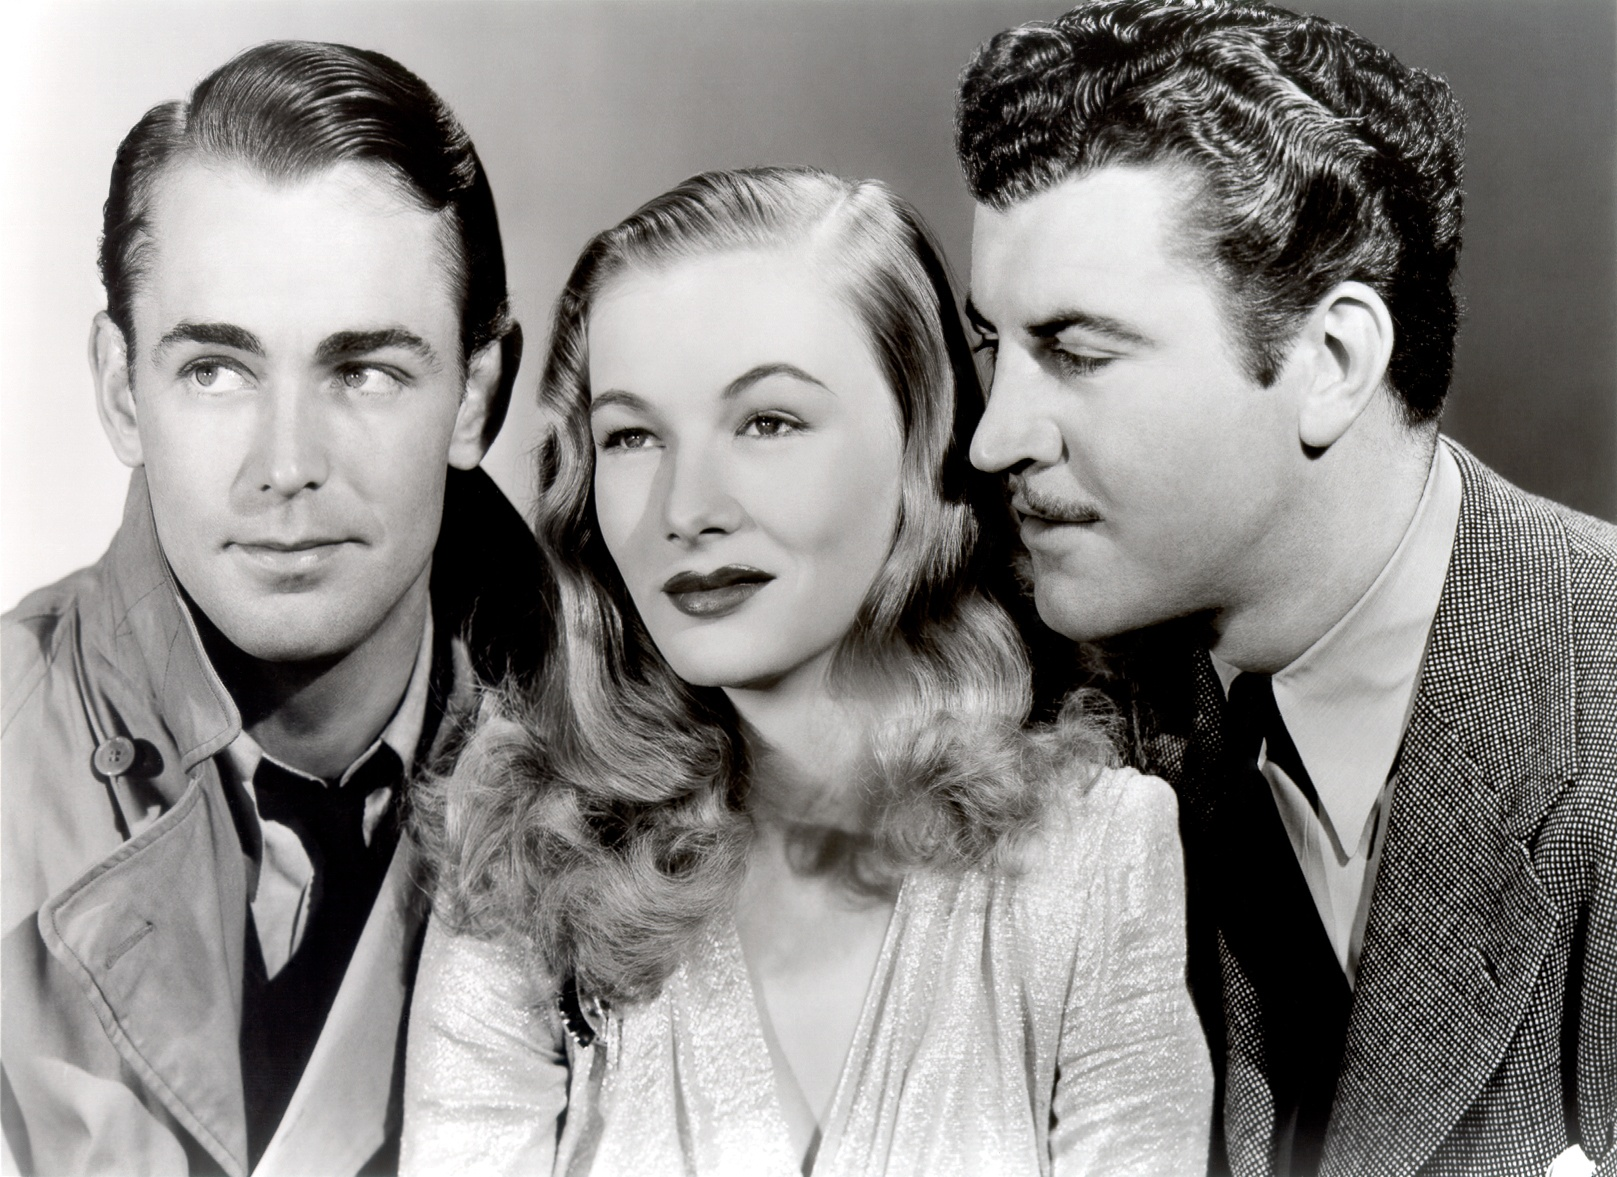 Veronica Lake in This Gun for Hire (L to R) Alan Ladd, Veronica Lake, Robert Preston